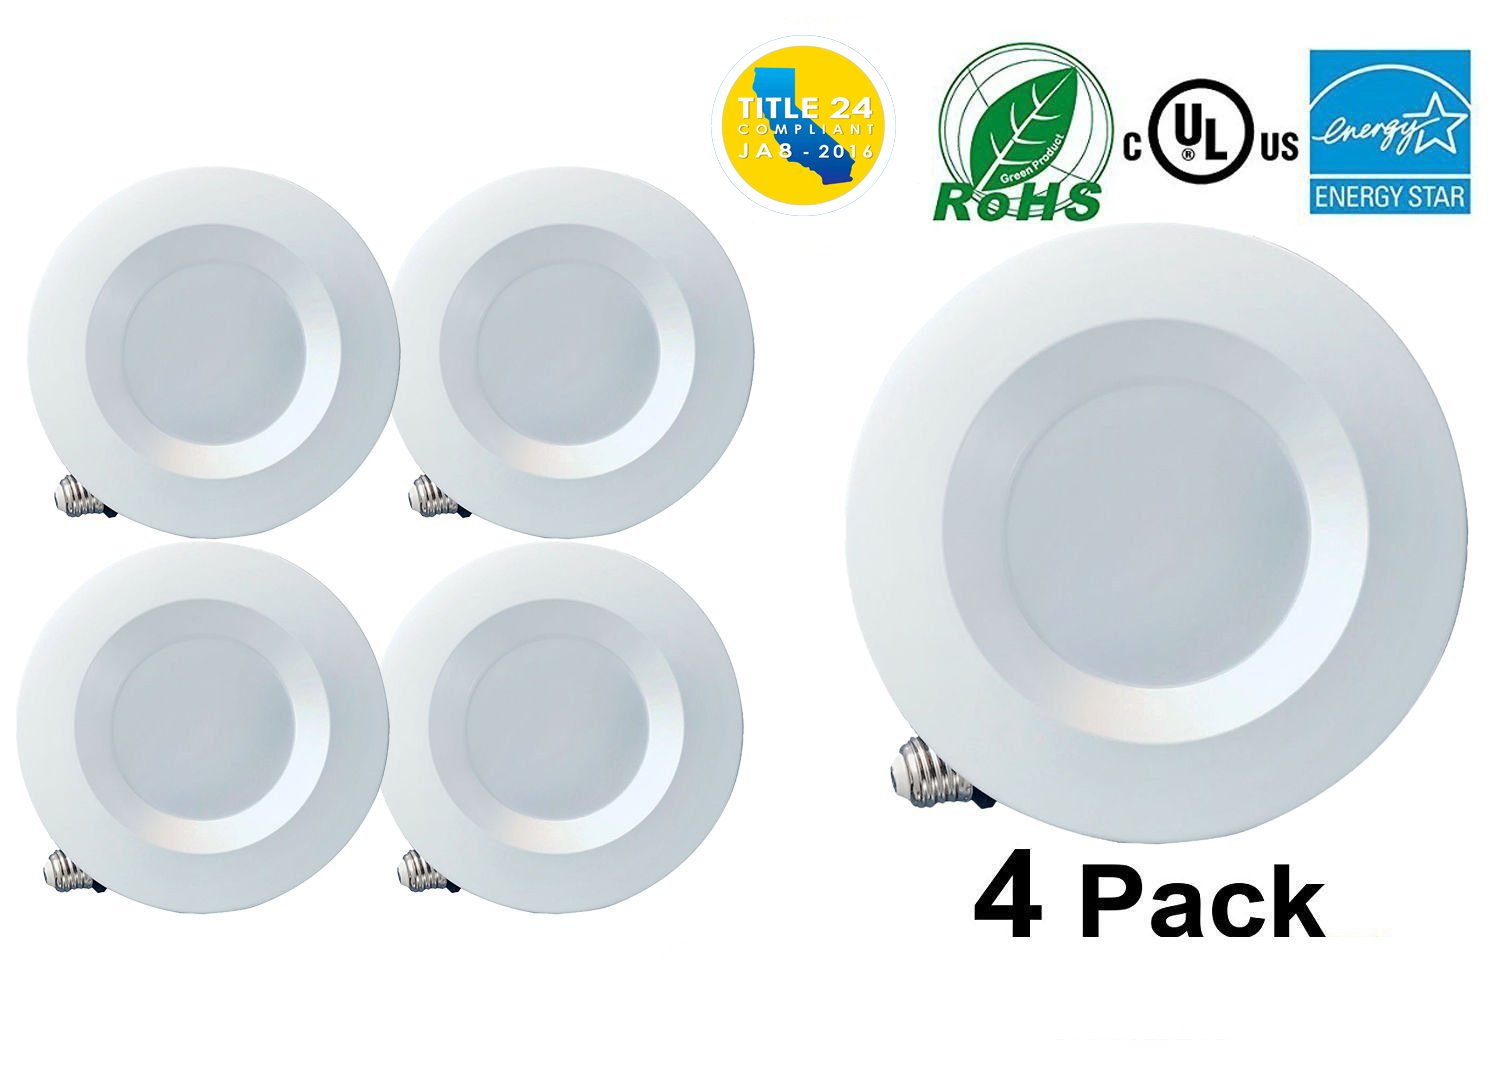 4 Inch Dimmable LED Downlight Smooth Trim, 600 Lumens, 5000K Daylight, Recessed Retrofit Lighting Trim, 10W (60W Replacement), ENERGY STAR UL Listed,TITLE 24 JA8-2016 Compliant 4 Pack